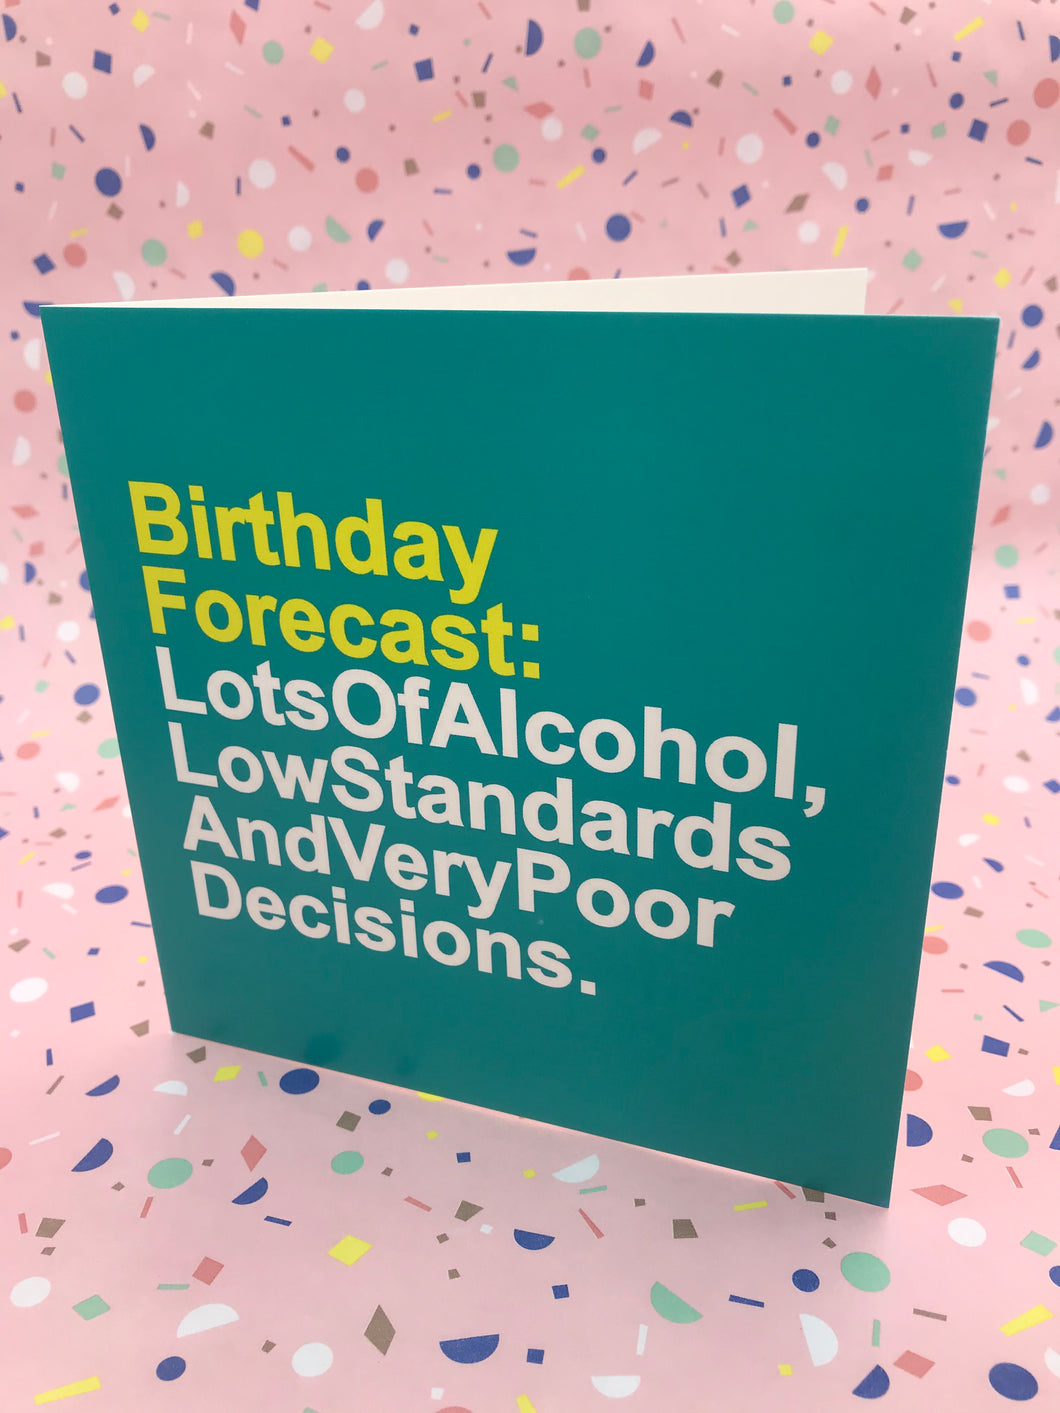 A green and yello typography card about alcohol and poor decisions